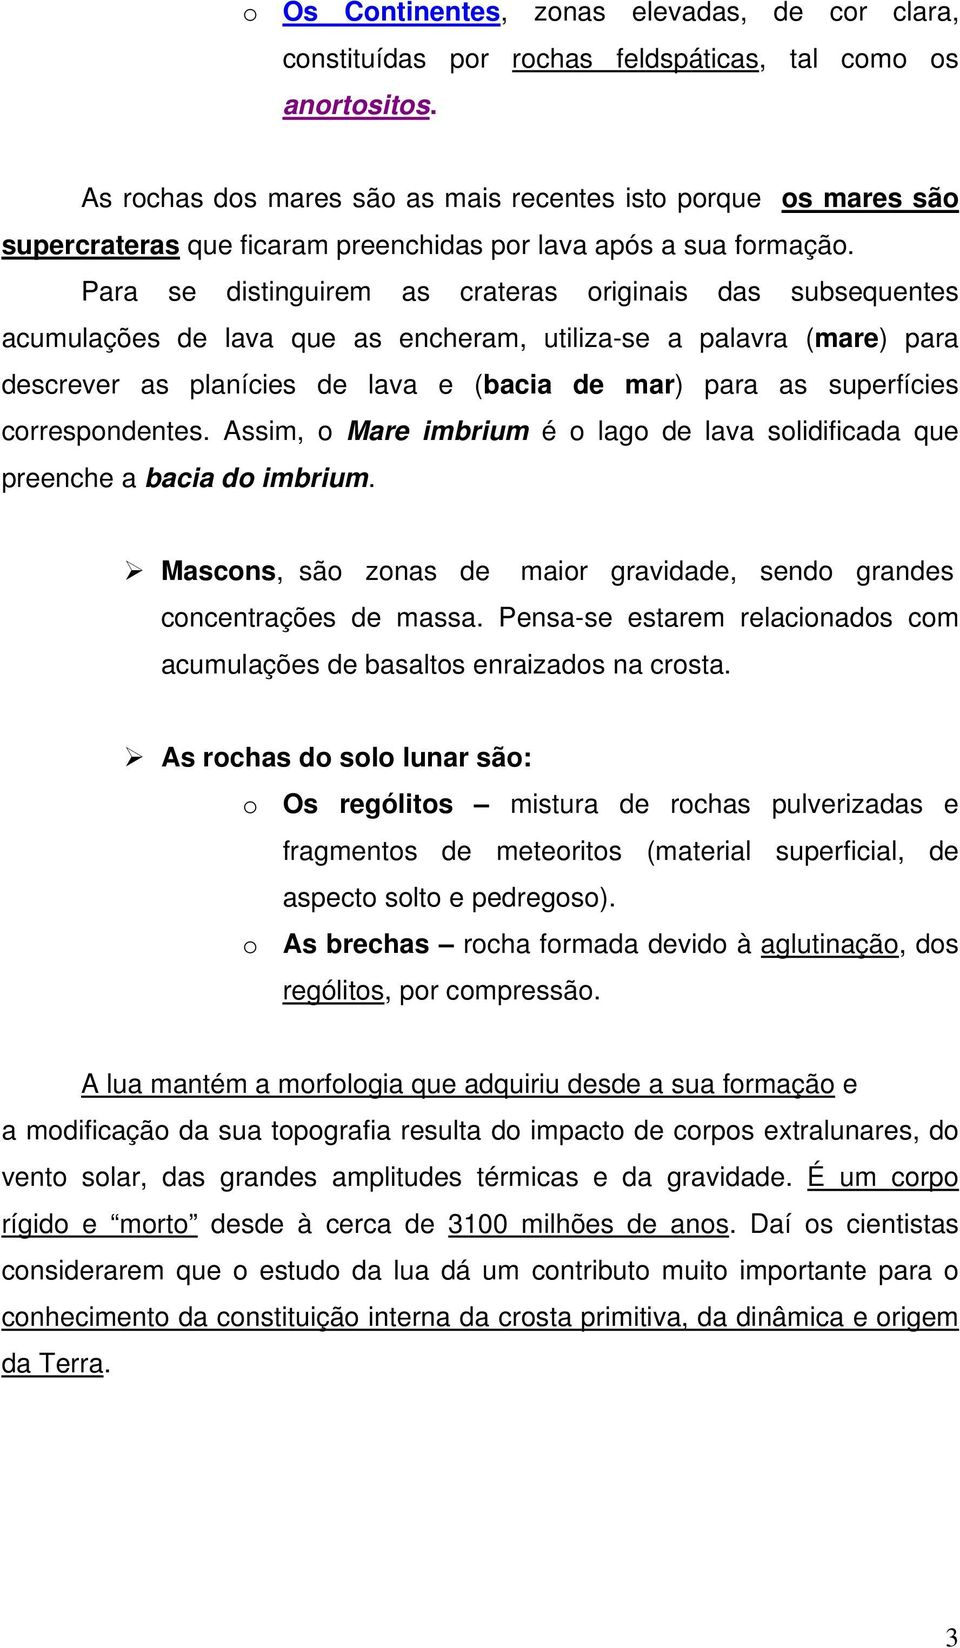 Para se distinguirem as crateras originais das subsequentes acumulações de lava que as encheram, utiliza-se a palavra (mare) para descrever as planícies de lava e (bacia de mar) para as superfícies